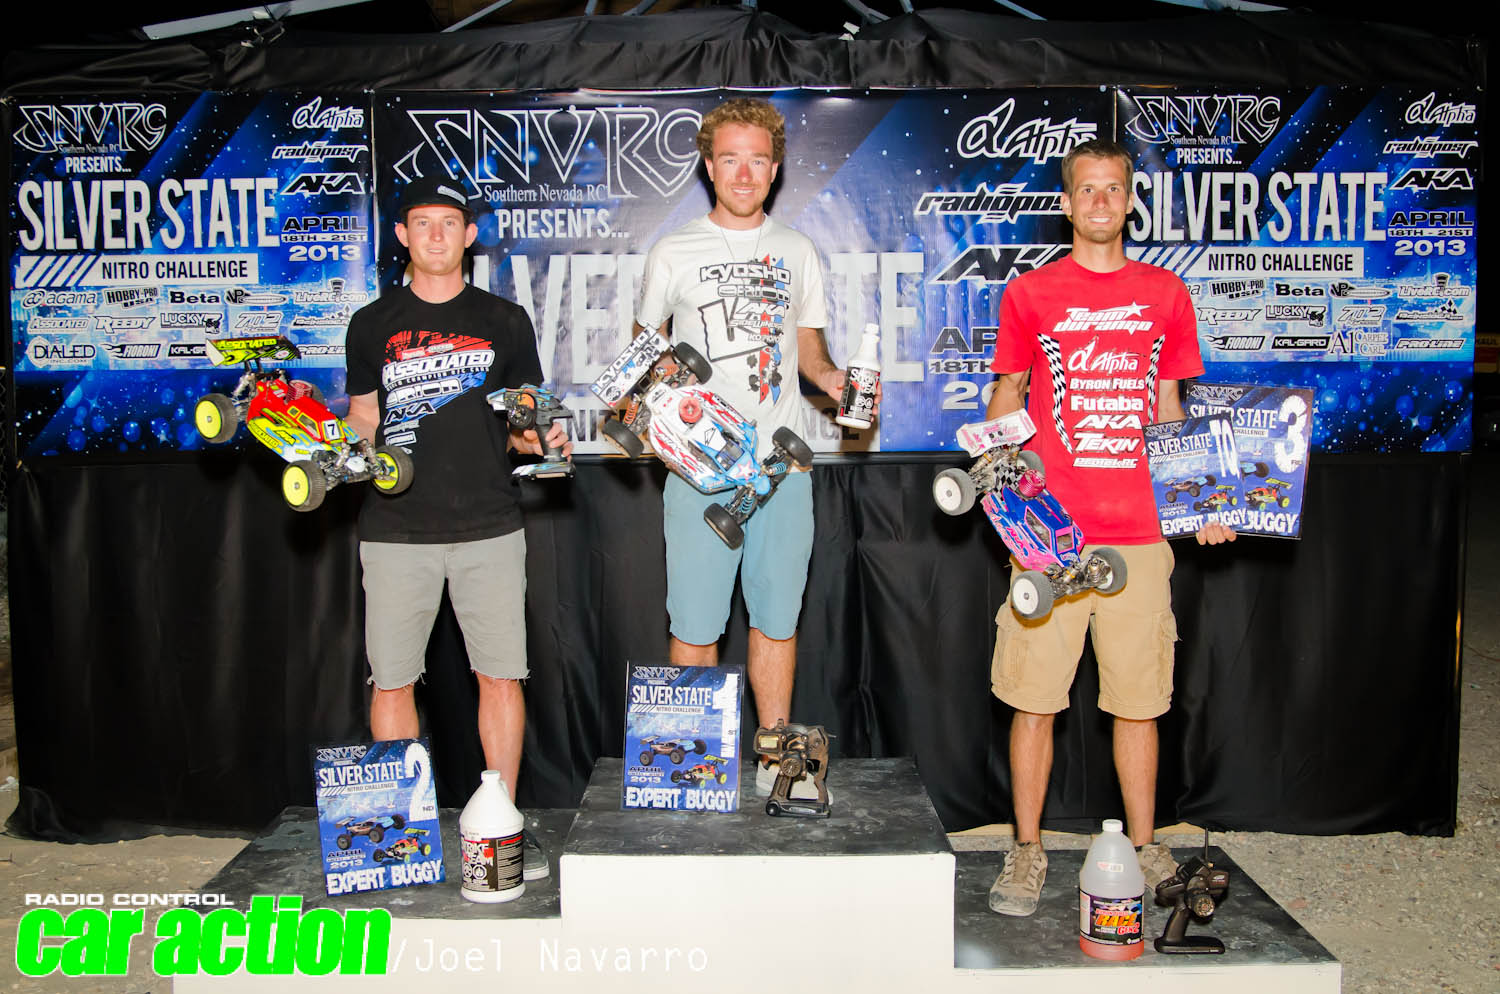 2013 Silver State: Final Results – Lutz and Tebo Win!